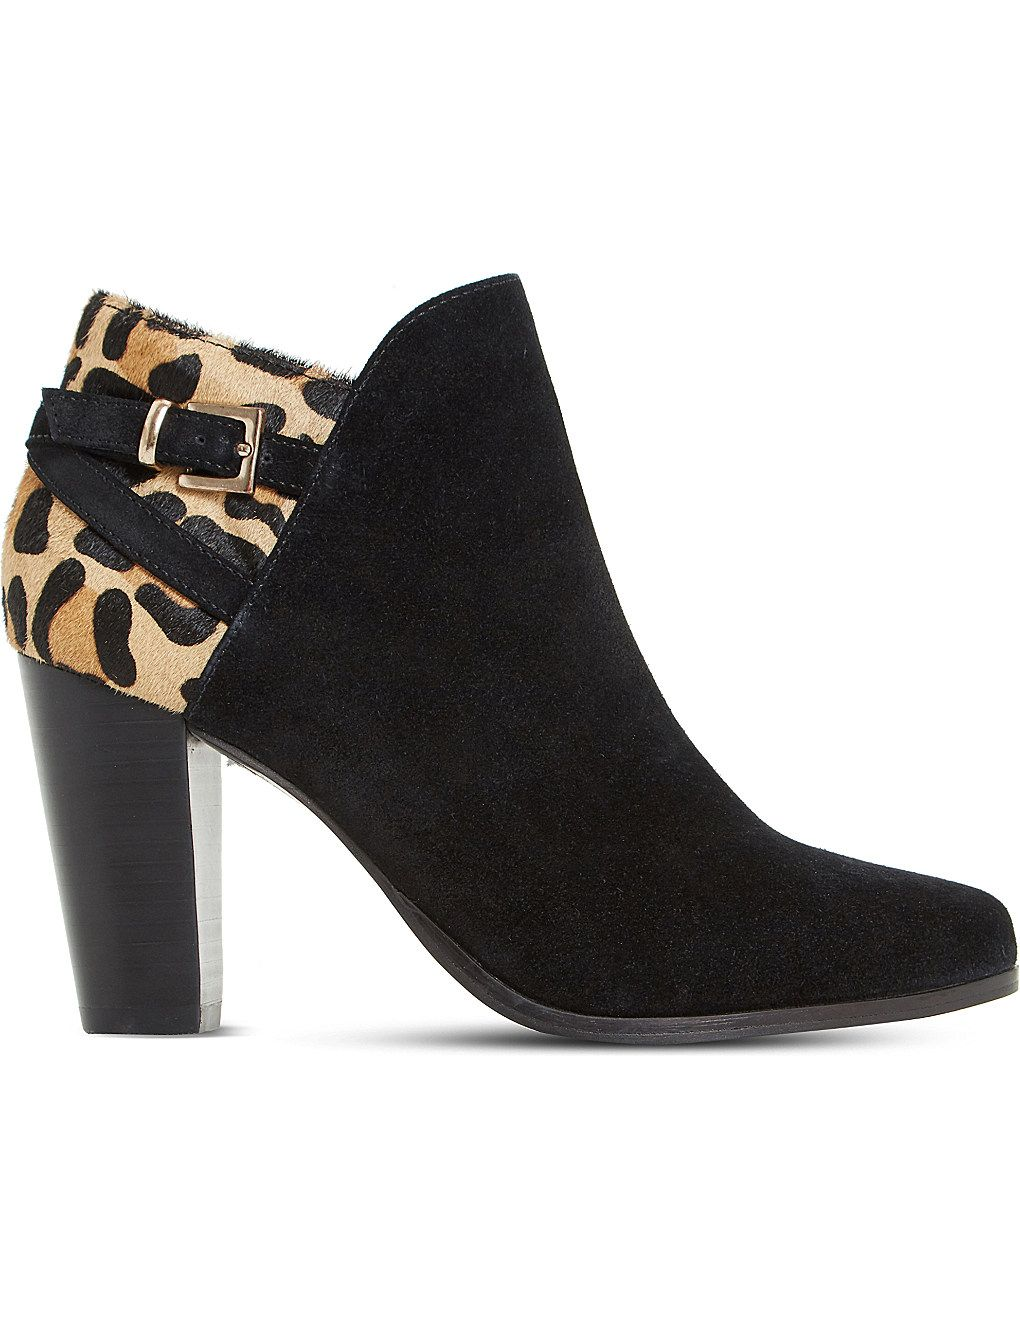 Leopard print heels, Suede ankle boots